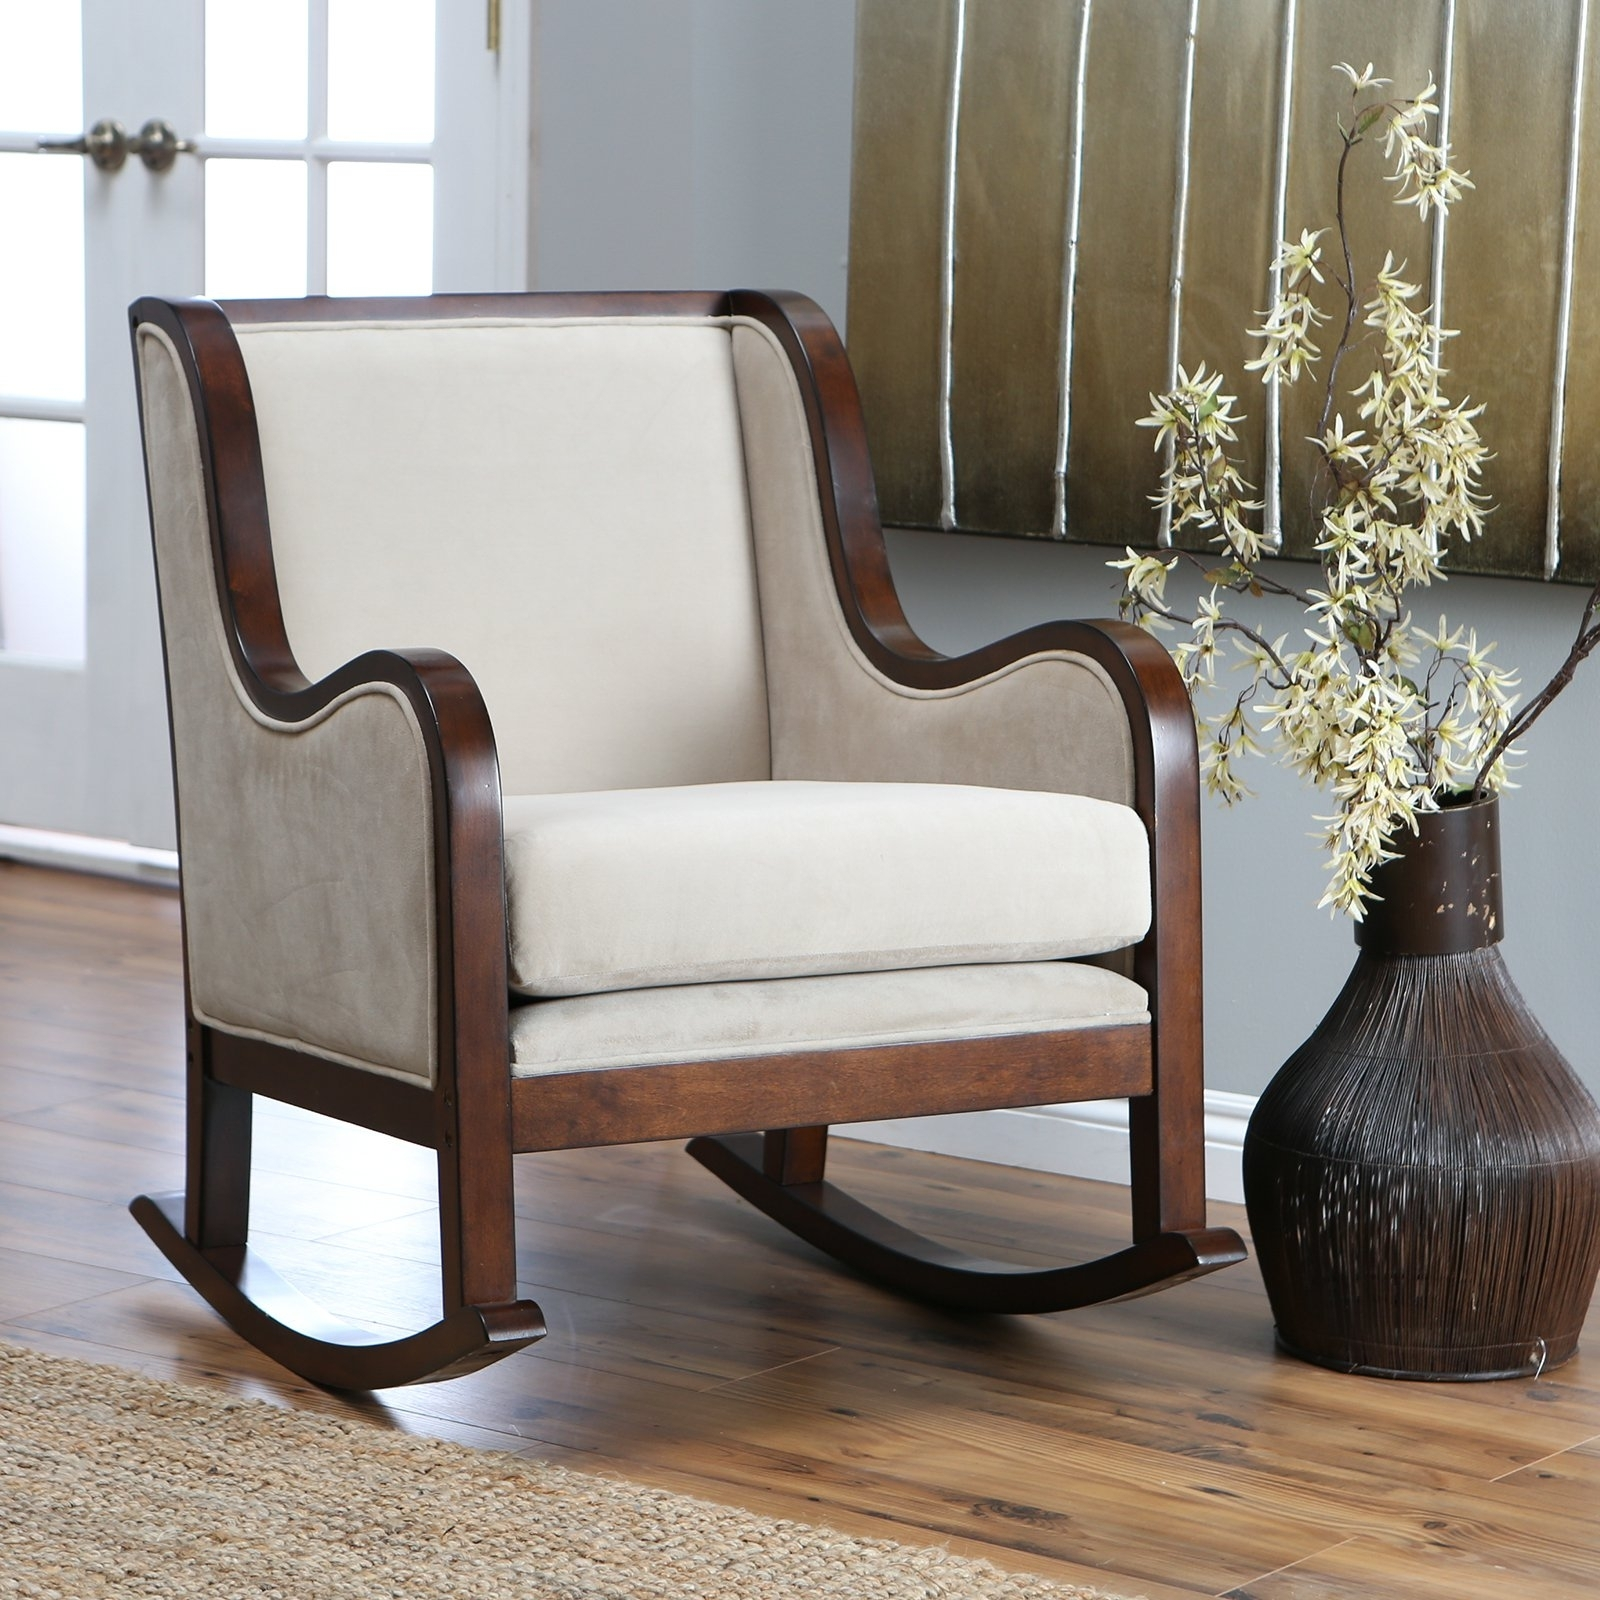 Decoration Furniture White Fabric Rocking Wooden Chair With Arms Intended For Rocking Chairs For Small Spaces (#6 of 15)